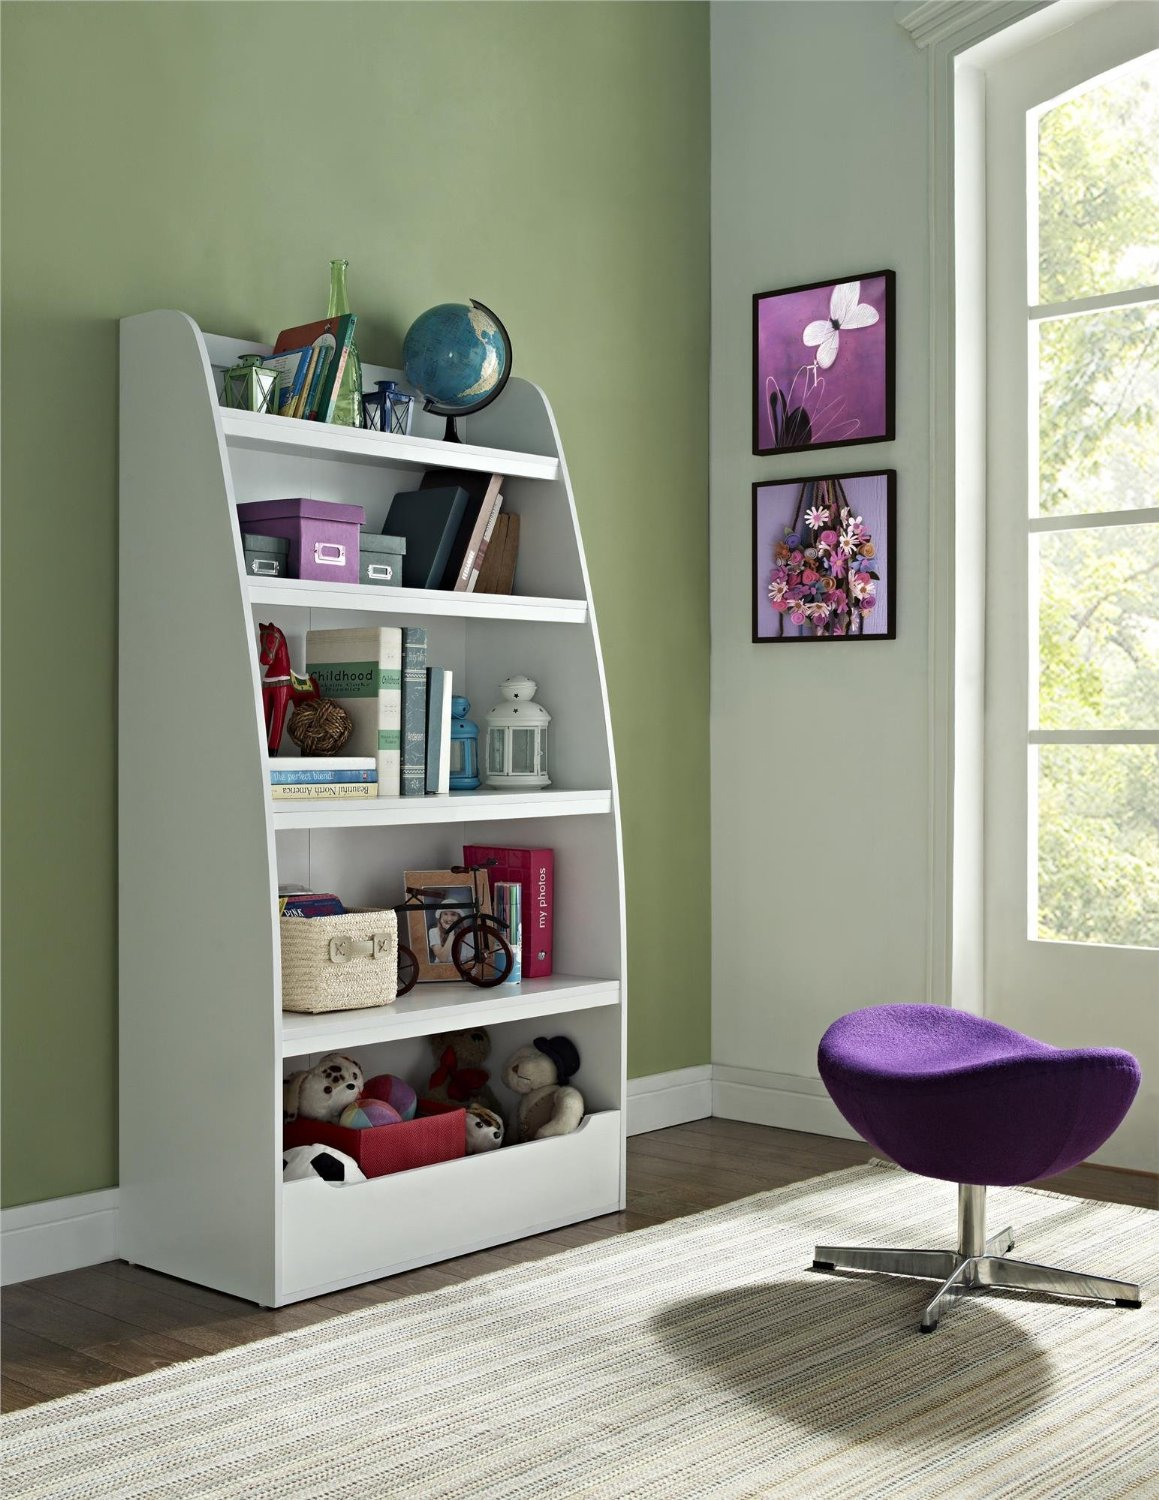 kids 4 shelf bookcase - Colored Bookshelves